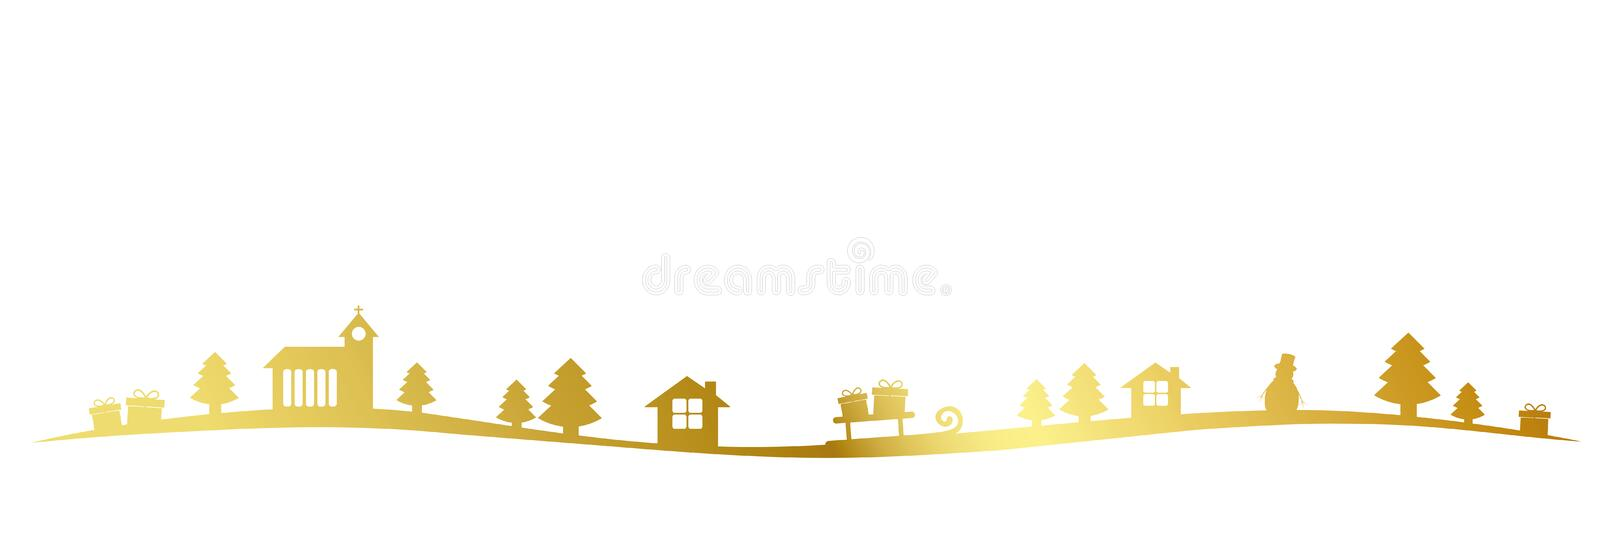 Golden christmas landscape border with church firs houses and gifts stock illustration